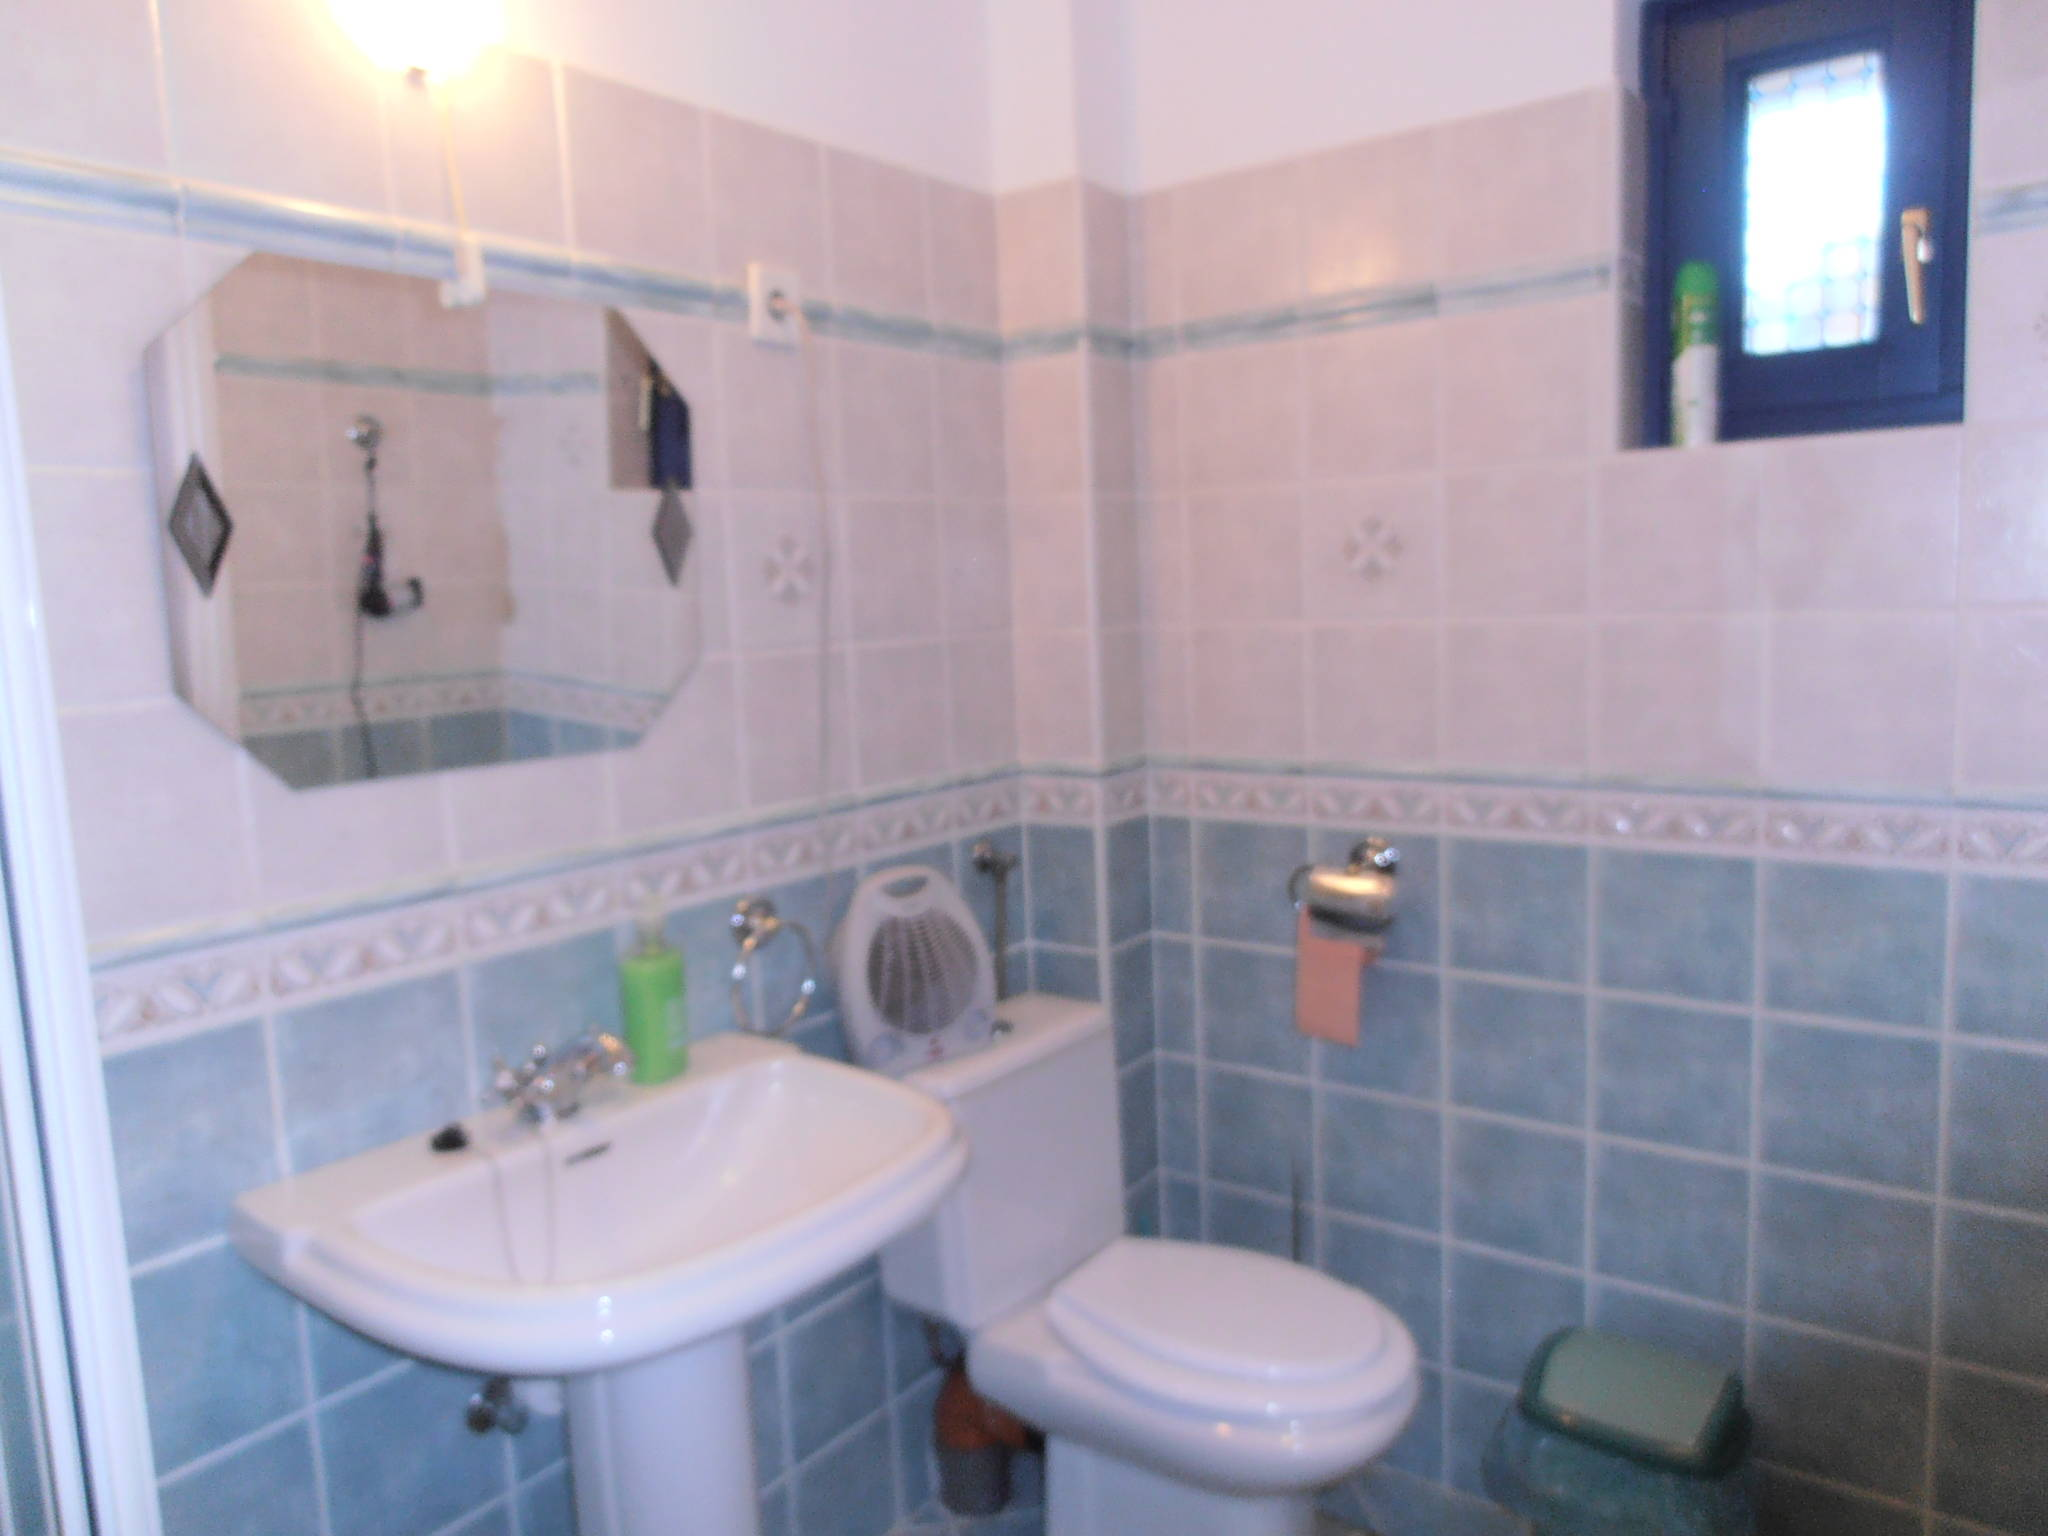 Photo of the bathroom